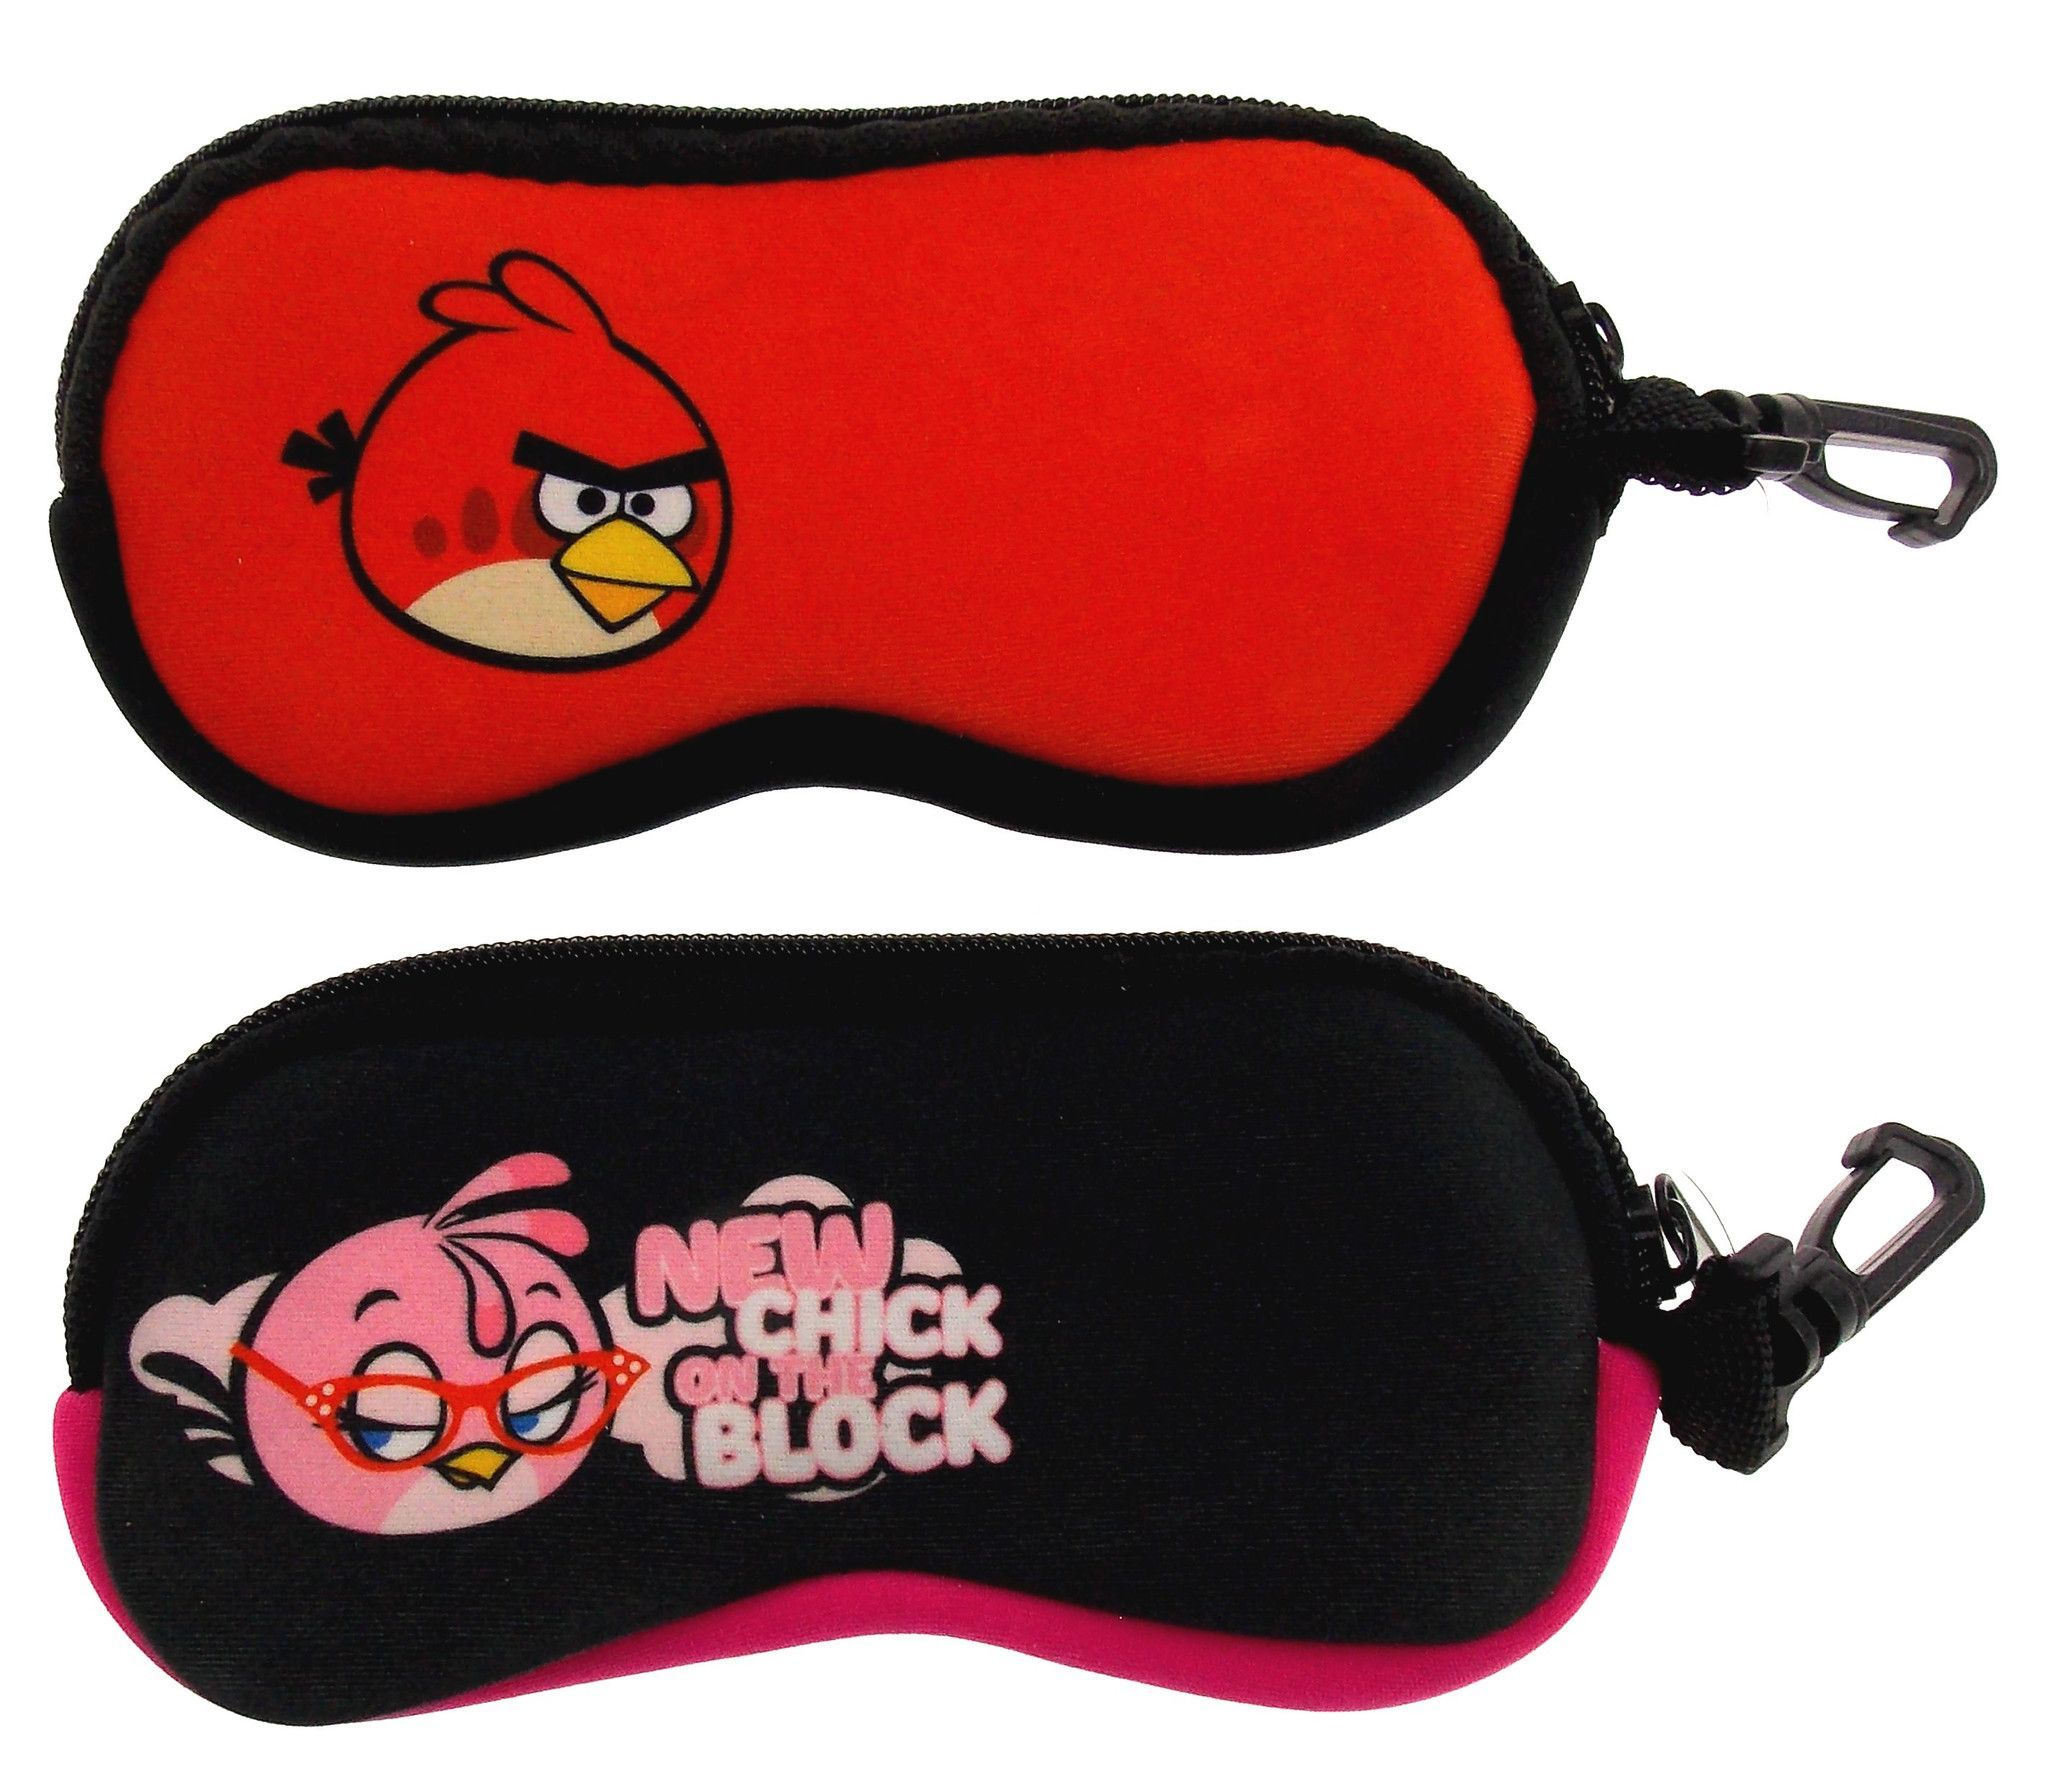 44aea0e992 Angry Birds Optical Case Lot 2 Sunglasses Eyeglass Reading Soft ...